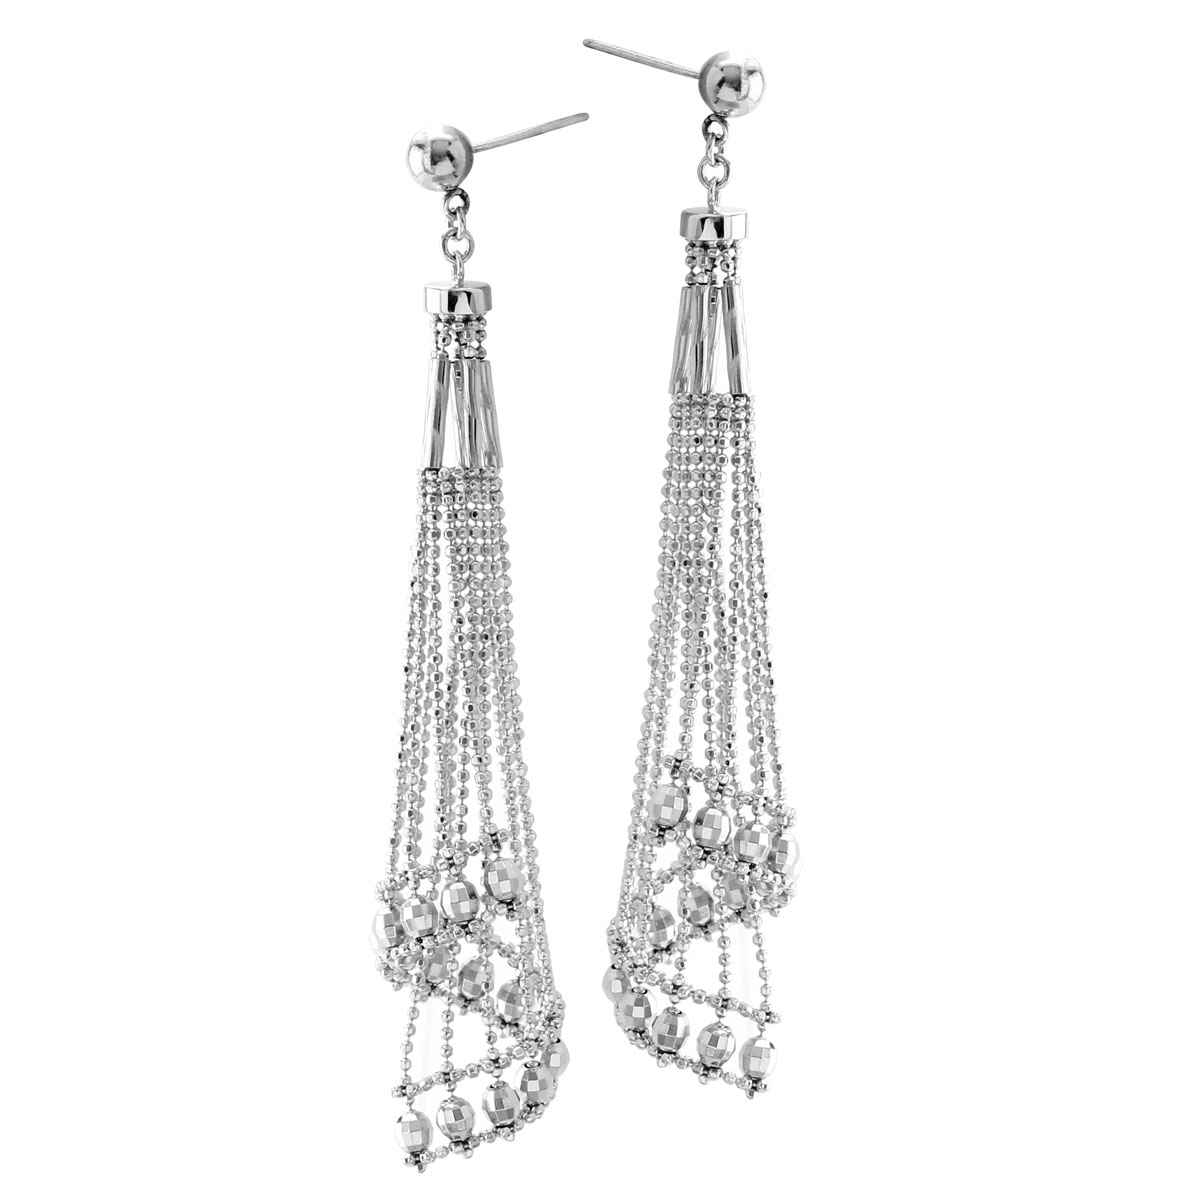 341478-Silver Lace Cascading Chandelier Earrings